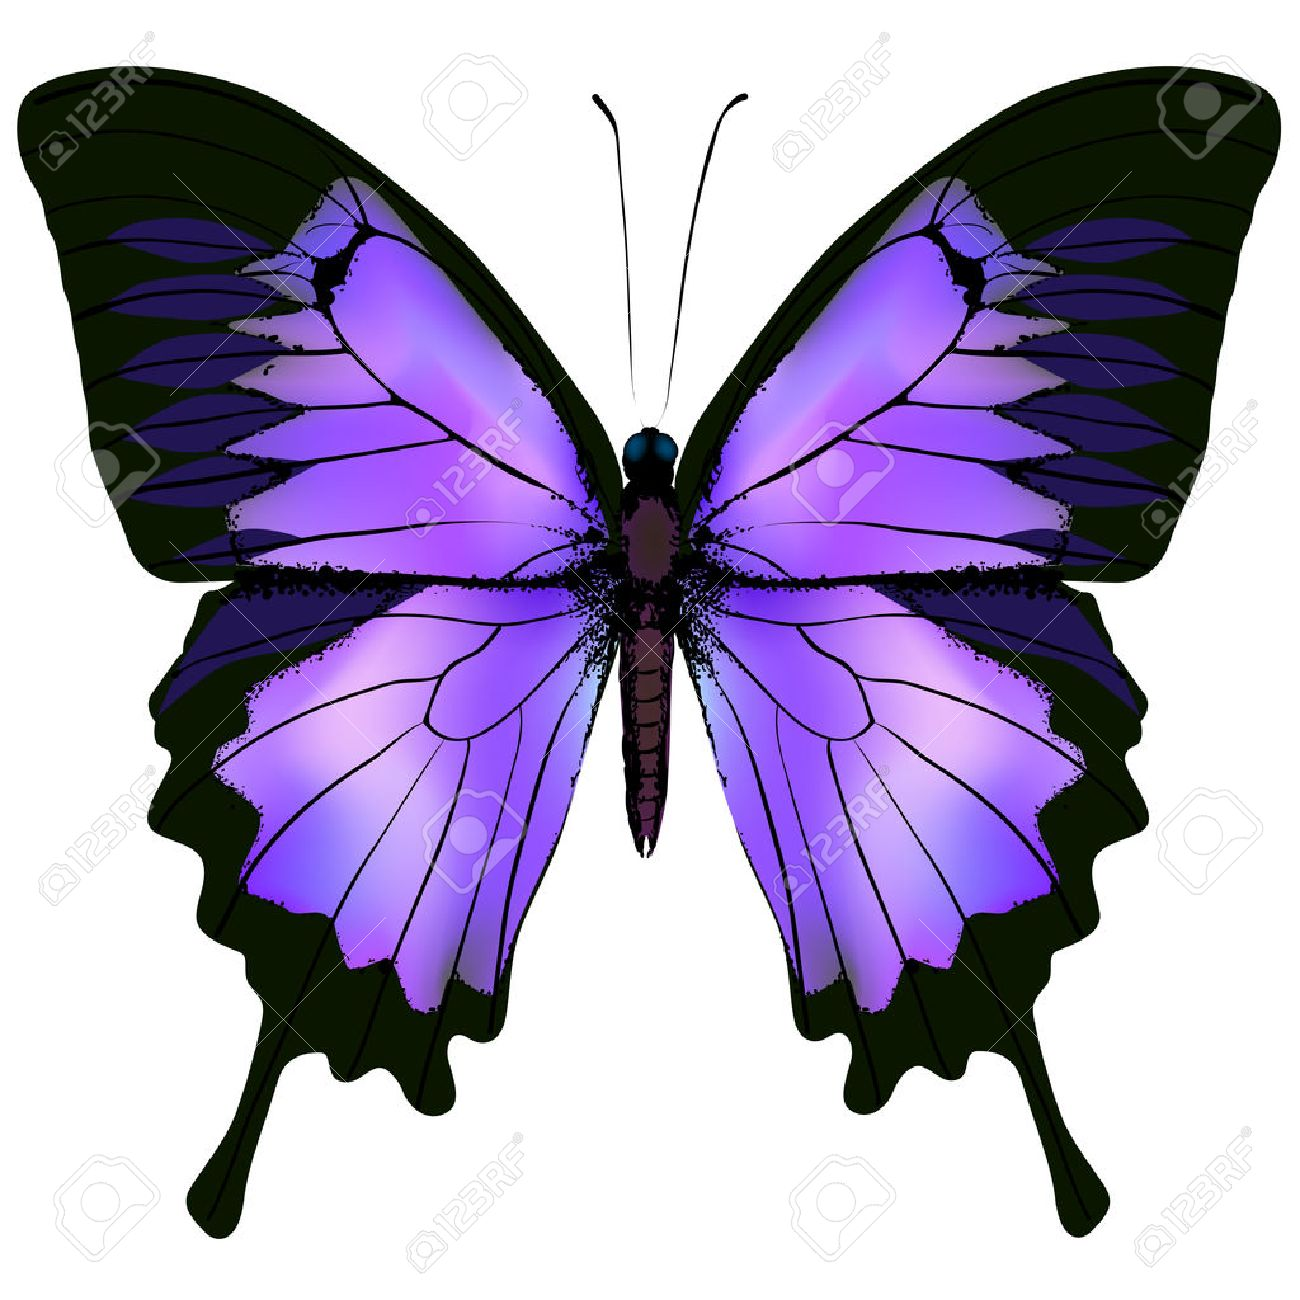 butterfly vector illustration of beautiful pink and purple lilac